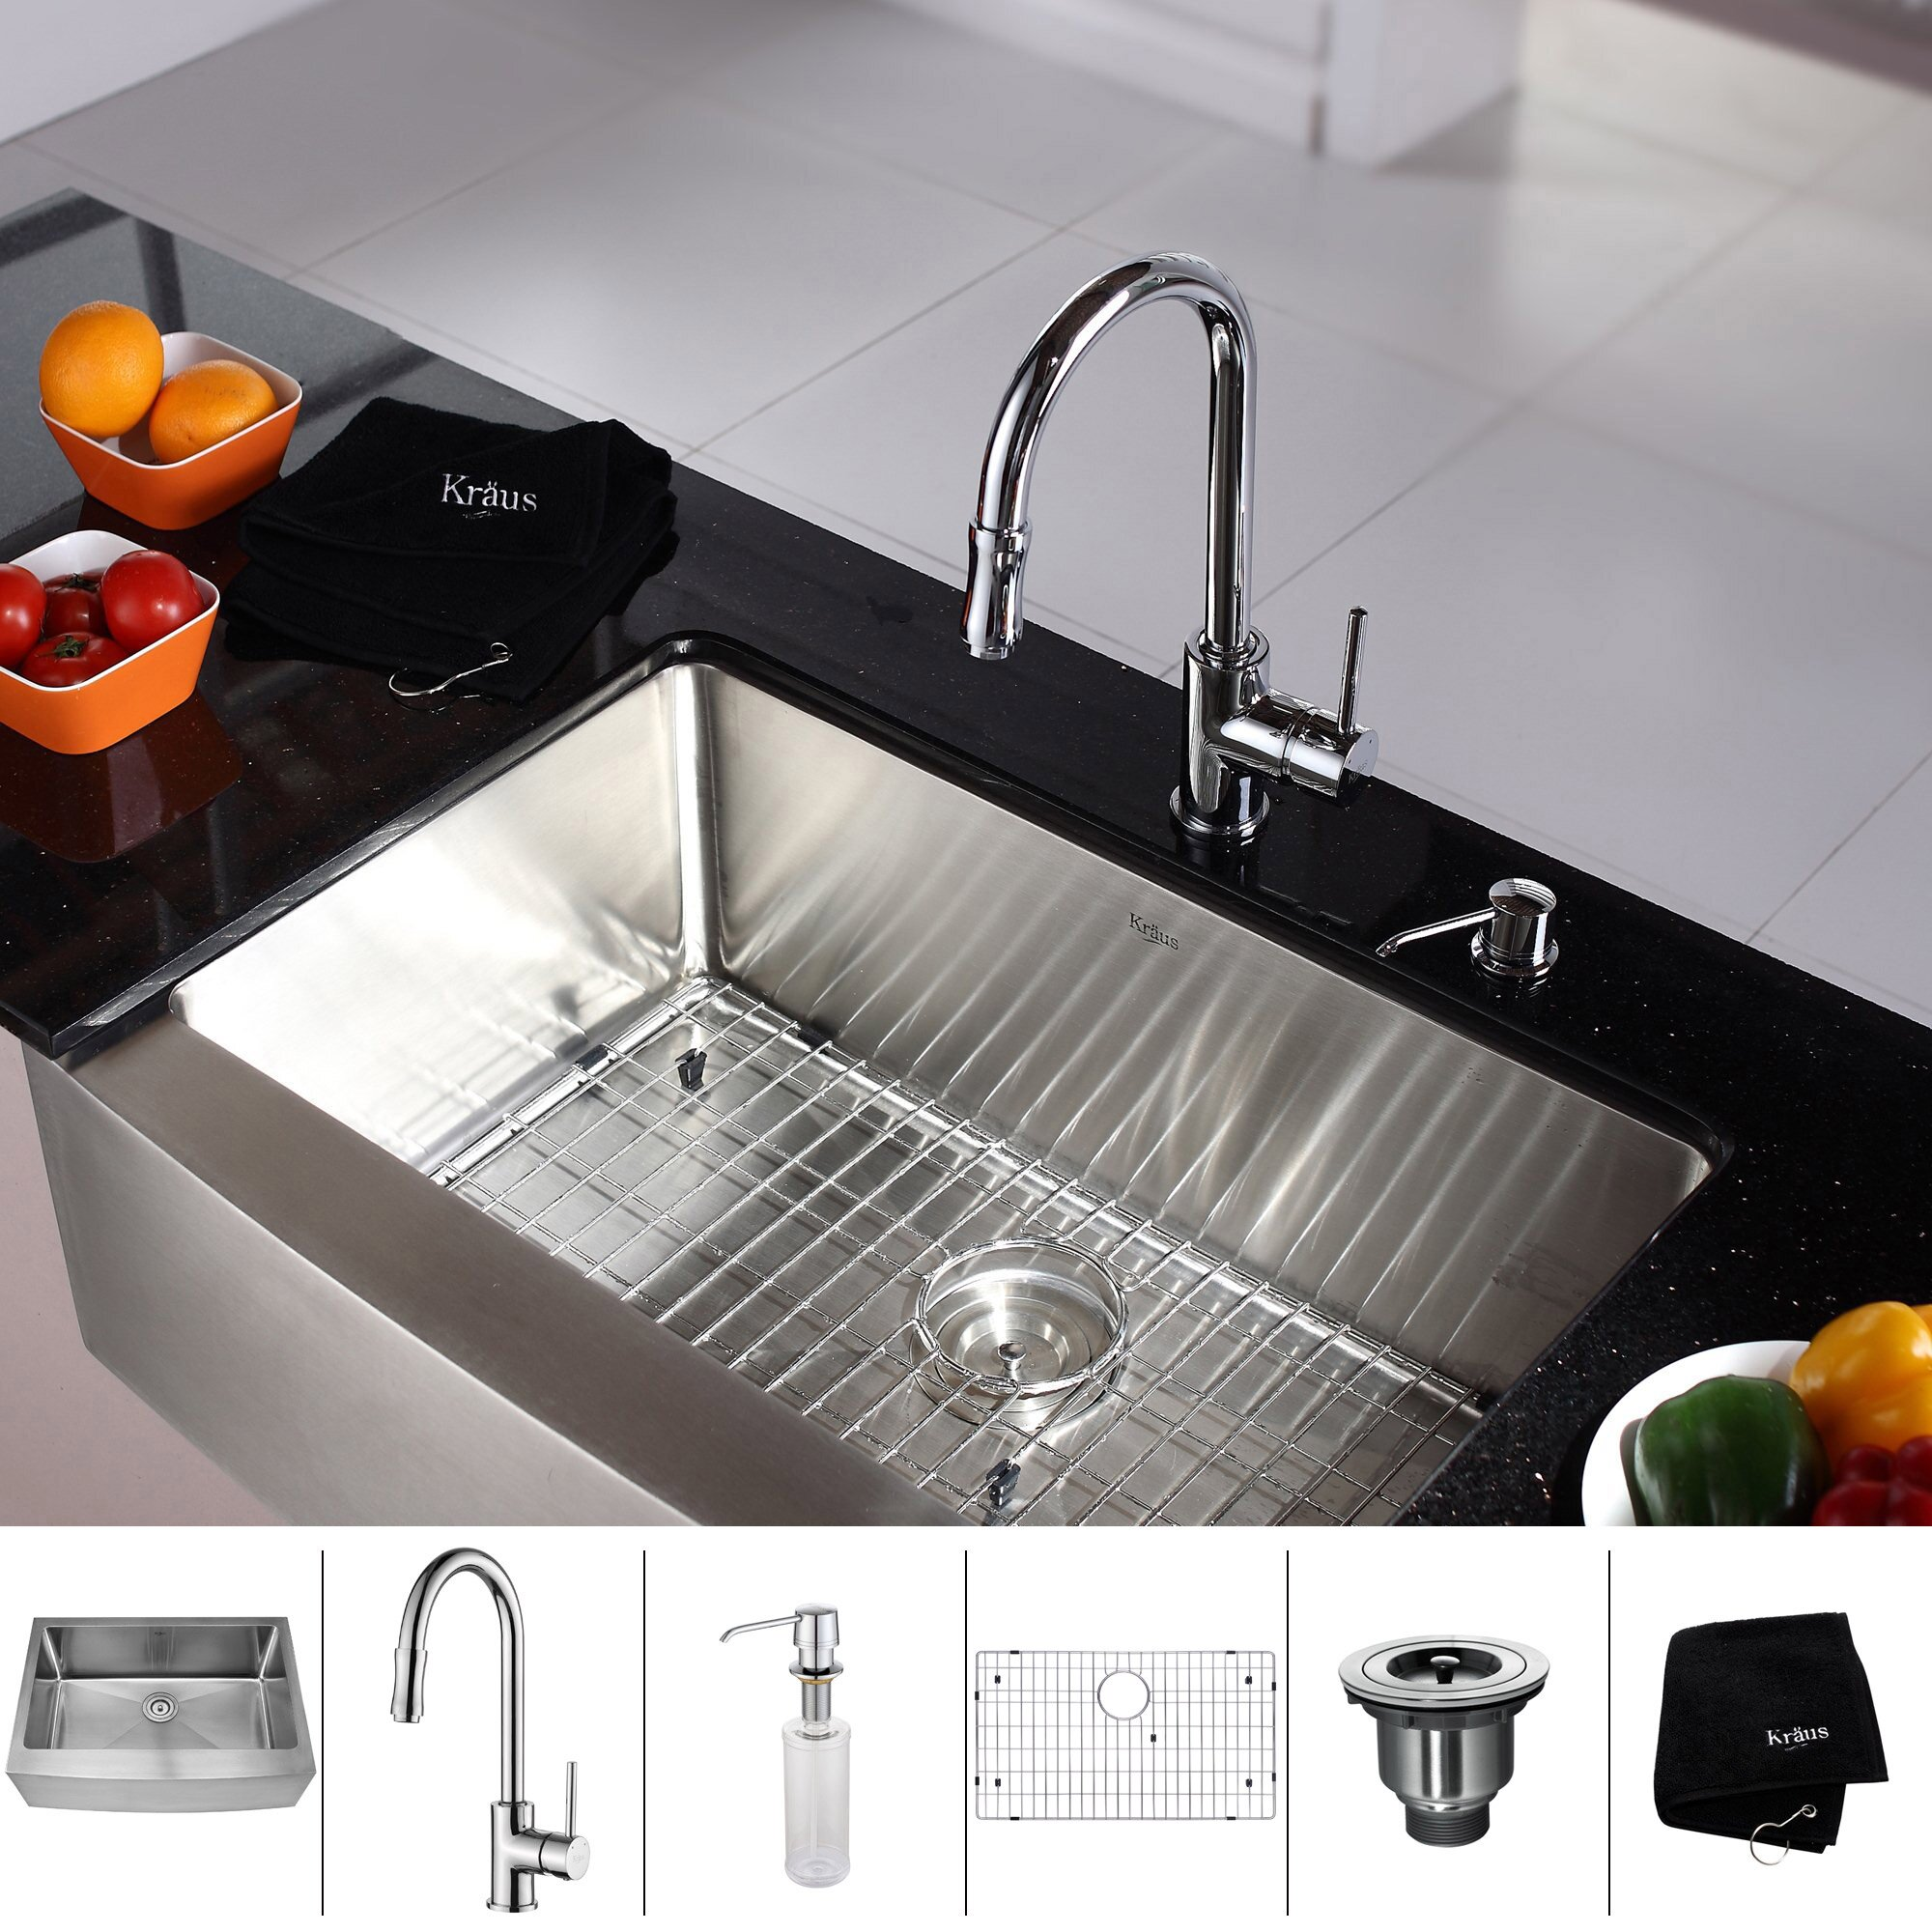 """Kraus 2975"""" X 20"""" Farmhouse Kitchen Sink With Faucet And. Round Kitchen Sink And Drainer. Unstop Kitchen Sink. Home Depot Double Kitchen Sink. Drain Pipe Size For Kitchen Sink. Kitchen Sink Clogged Past Trap. Kitchen Sinks With Granite Countertops. How To Cut Out A Kitchen Sink. Lighting Over Kitchen Sink"""